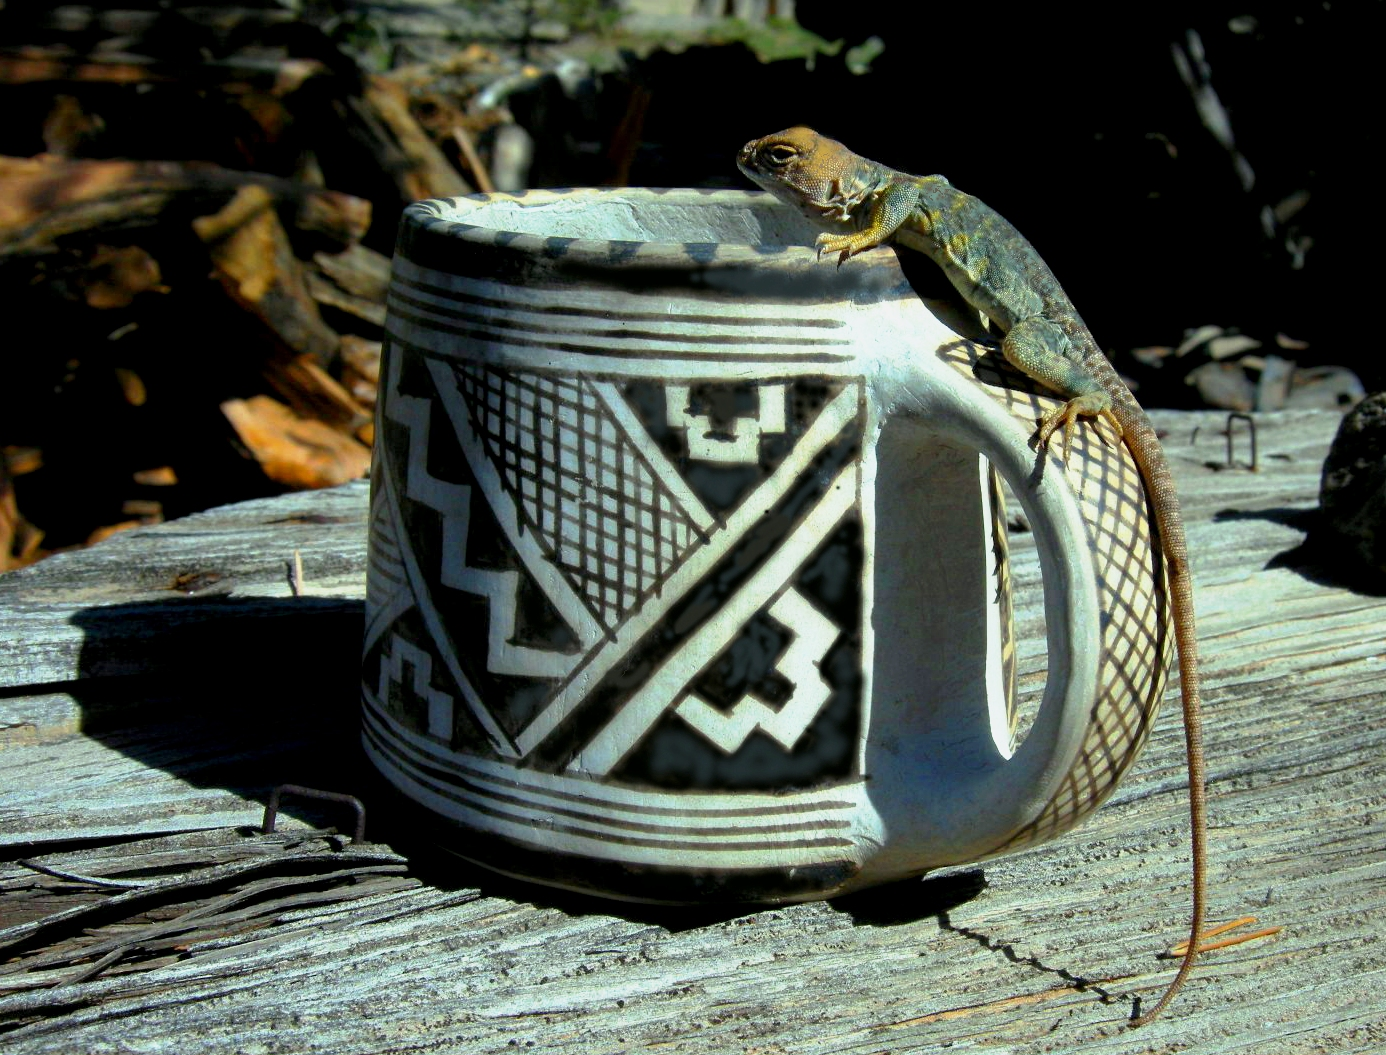 Collared Lizard on a Swink mugPED,